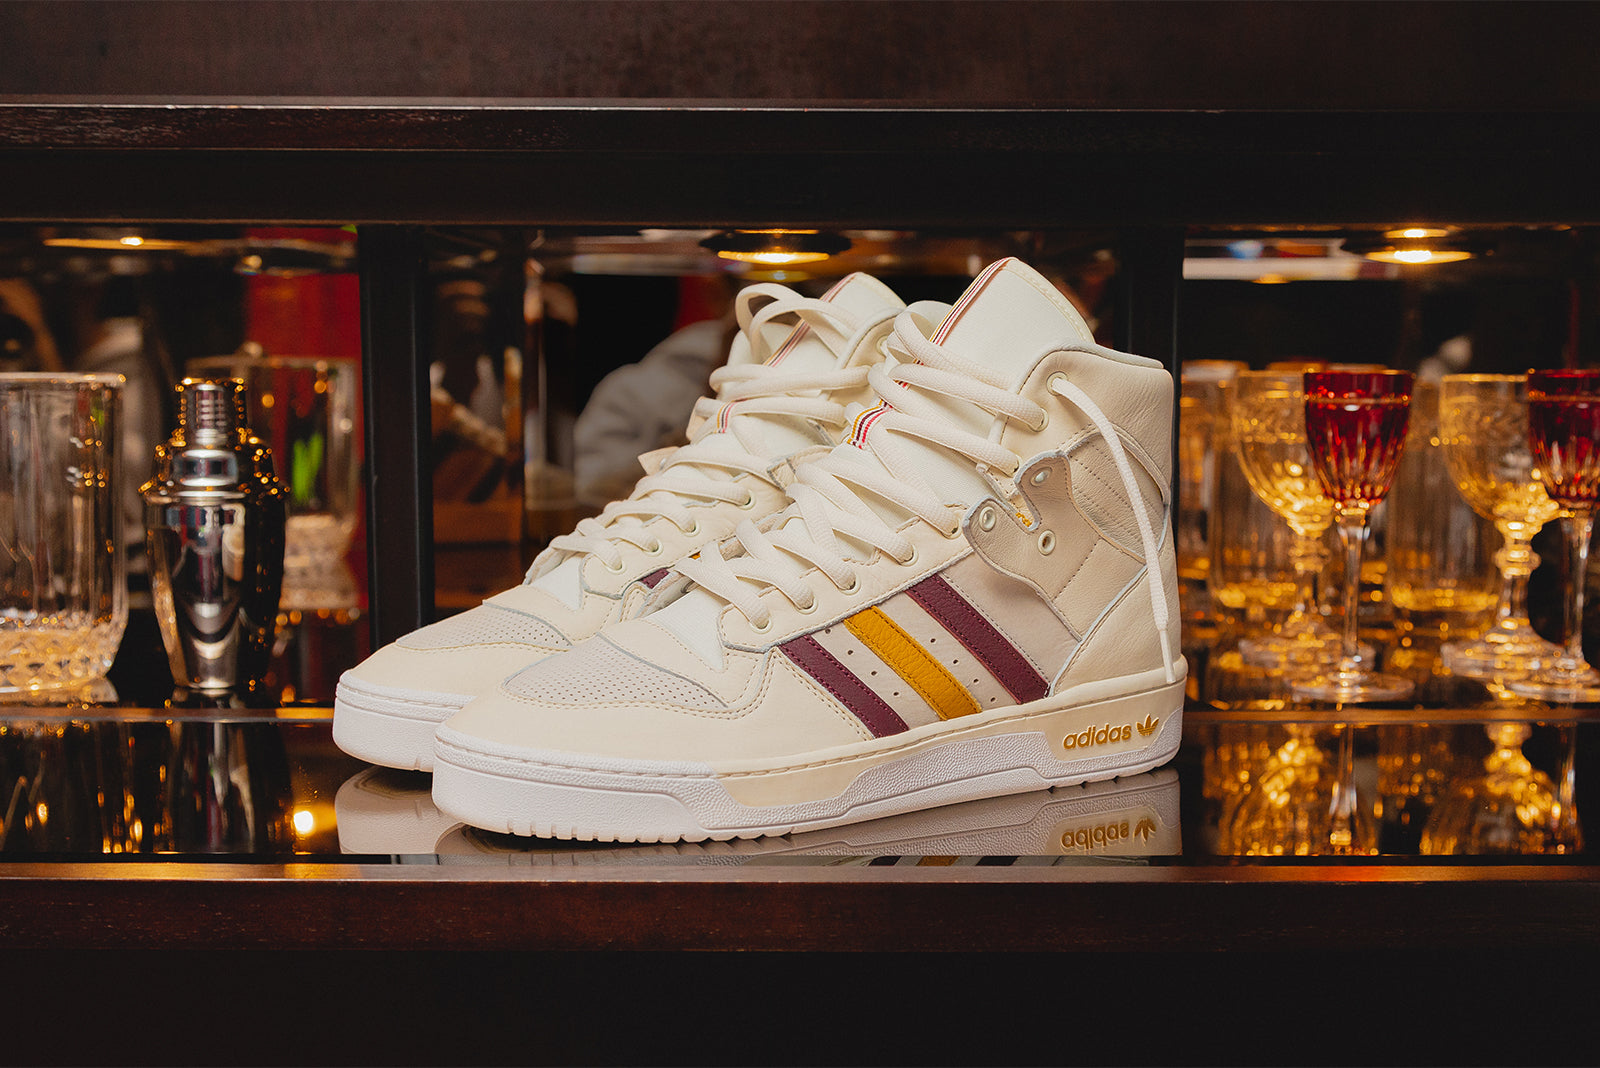 best website 5ff49 56fad adidas Orignals Rivalry Hi x Eric Emanuel G25836 Crystal WhiteNight Red  Price £159.00. Launch Friday 6th of December ONLINE 2300GMT